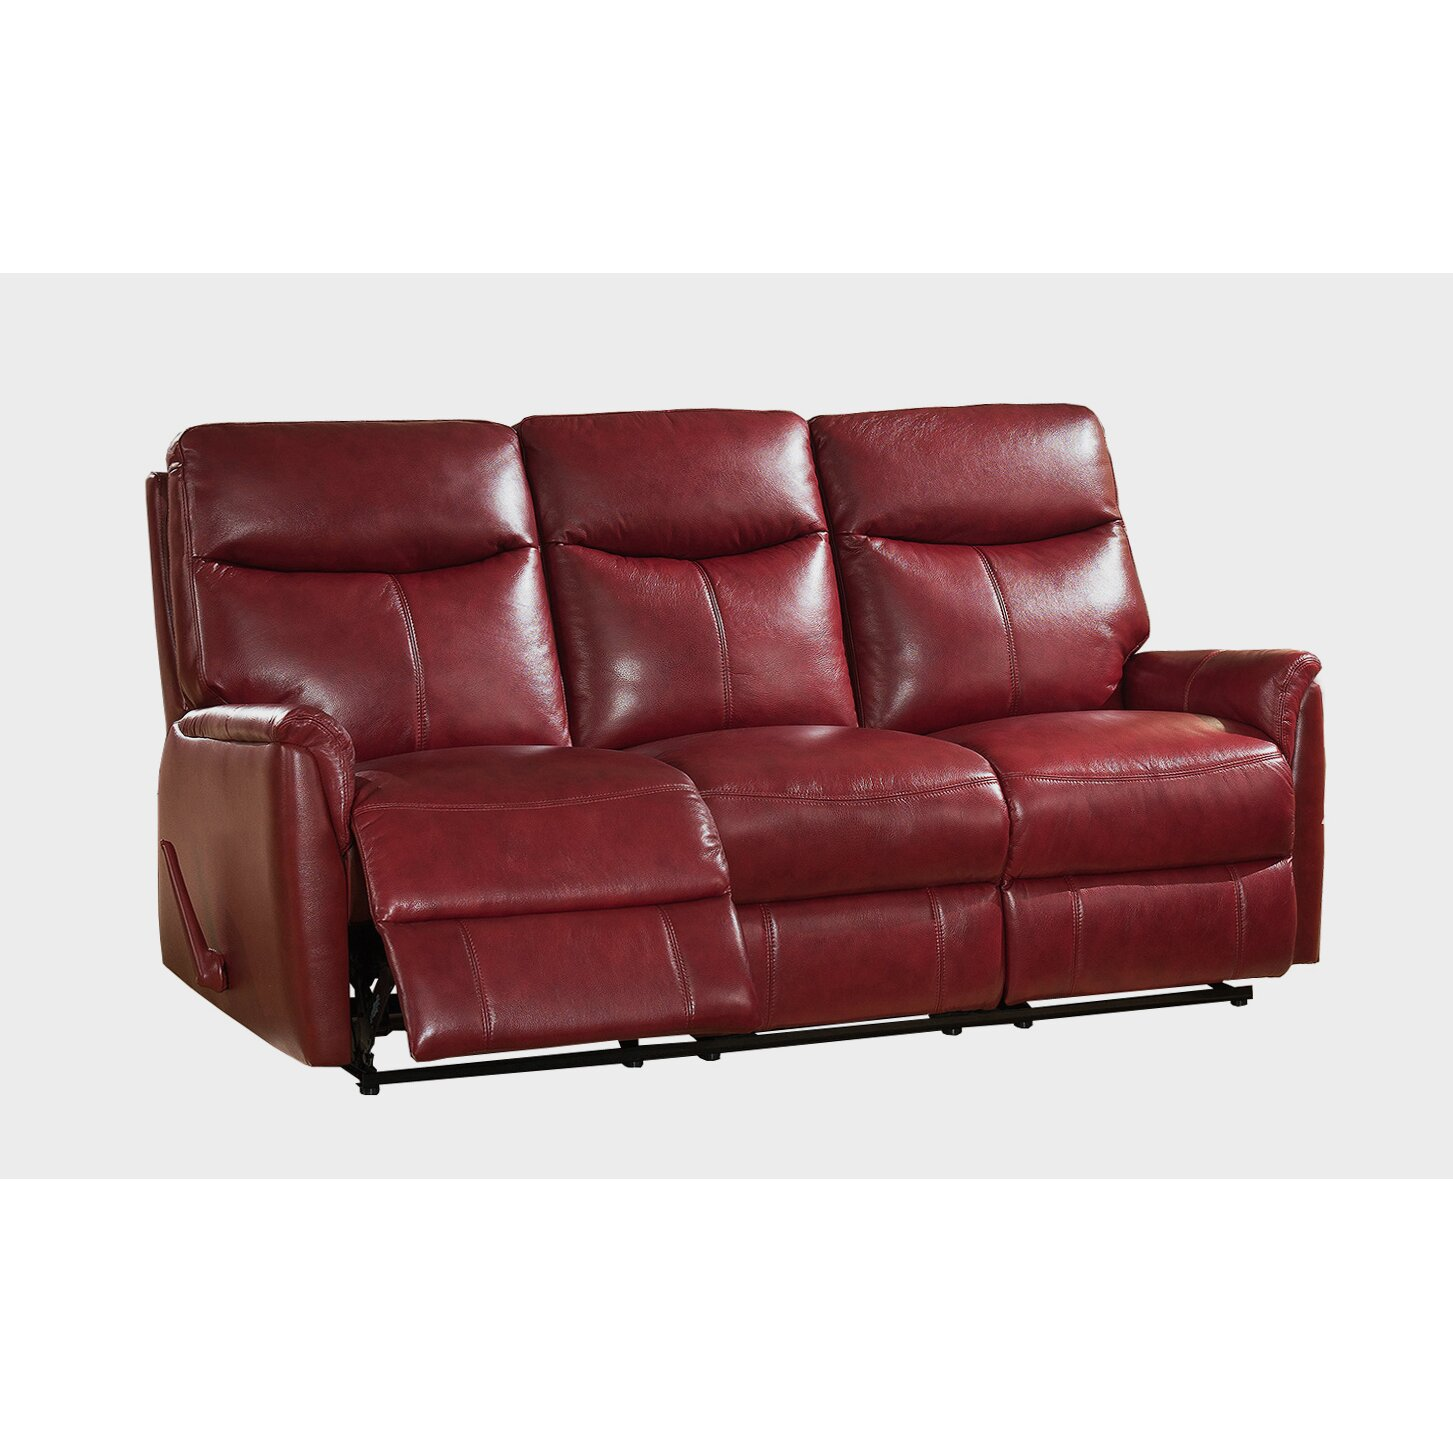 Amax napa top grain leather lay flat reclining sofa and loveseat set wayfair Leather loveseat recliners